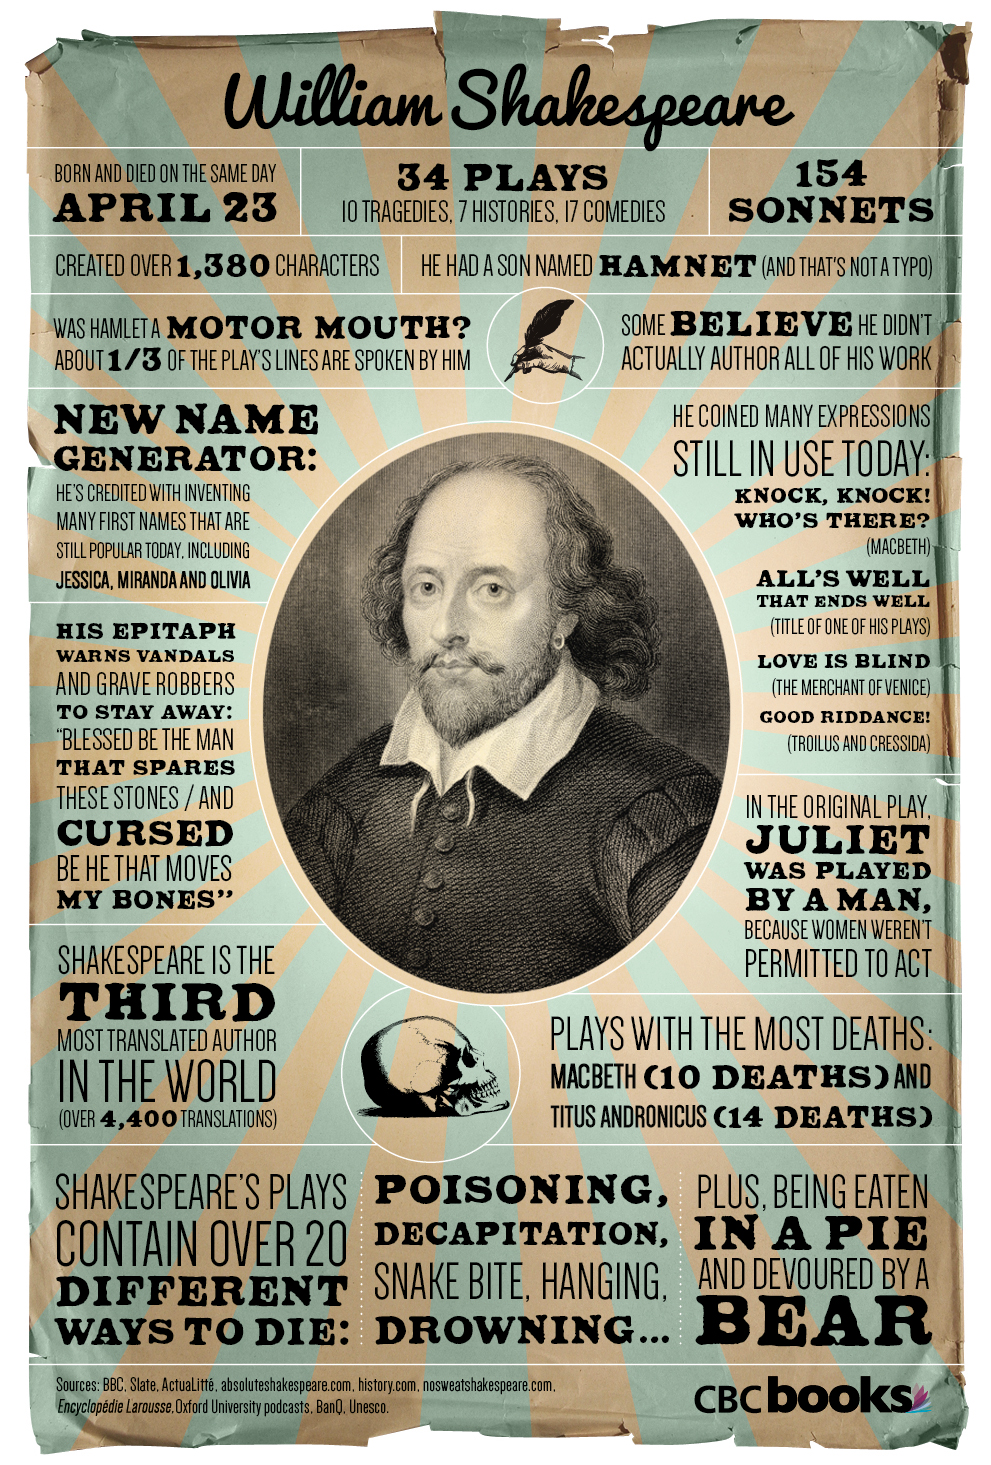 the similar comedic characteristics in william shakespeares plays Shakespeare's comedies can be recognized in terms of plot, structure and characters we can see that shakespearean comedies follow the same structural pattern, a basic plot on which the play is based for example, a key feature of all comedies is that they depend upon the resolution of their plots.